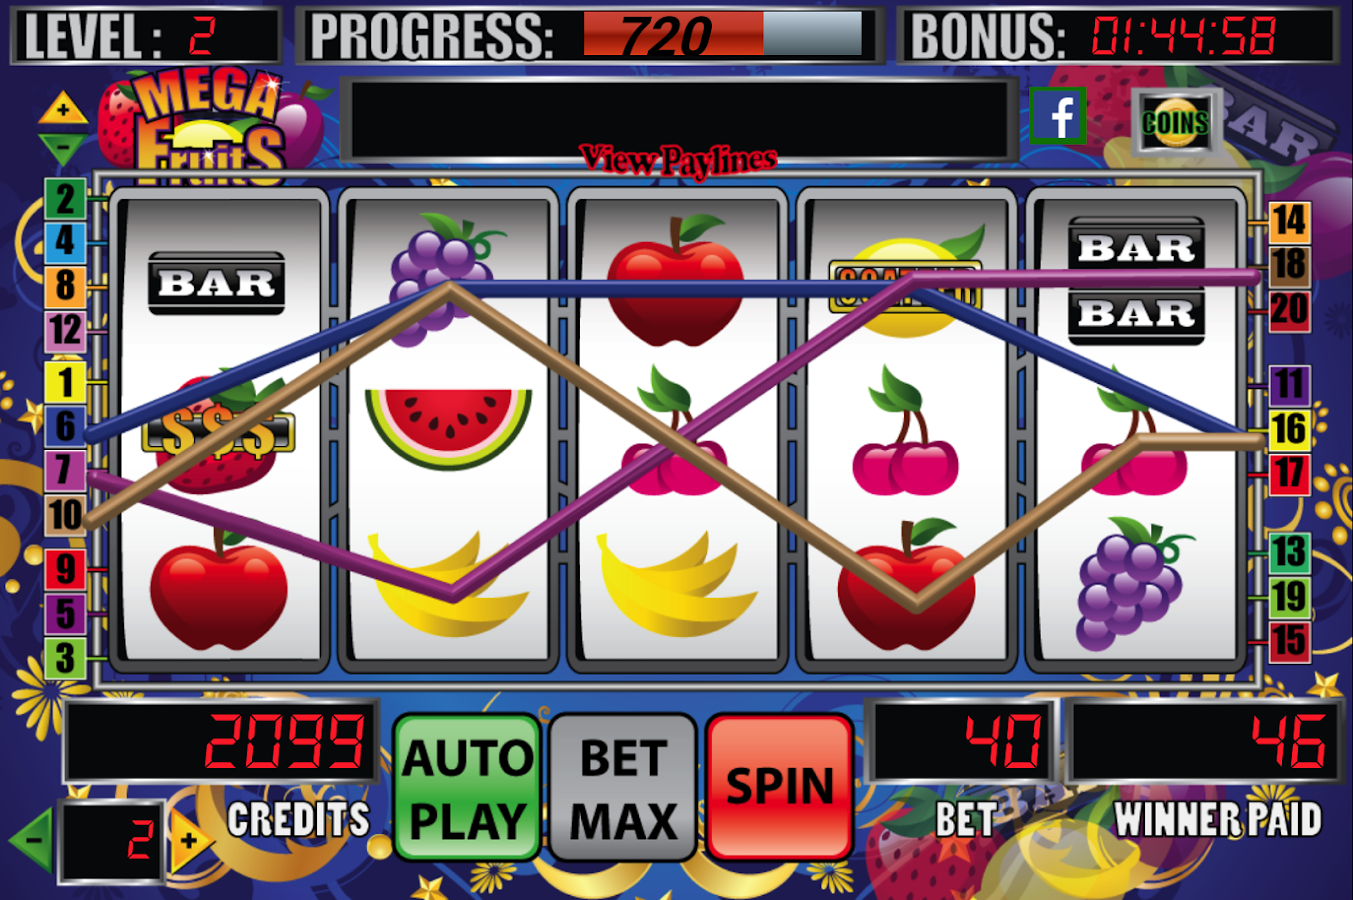 Fruit Heat Slot Machine - Play for Free Online Today